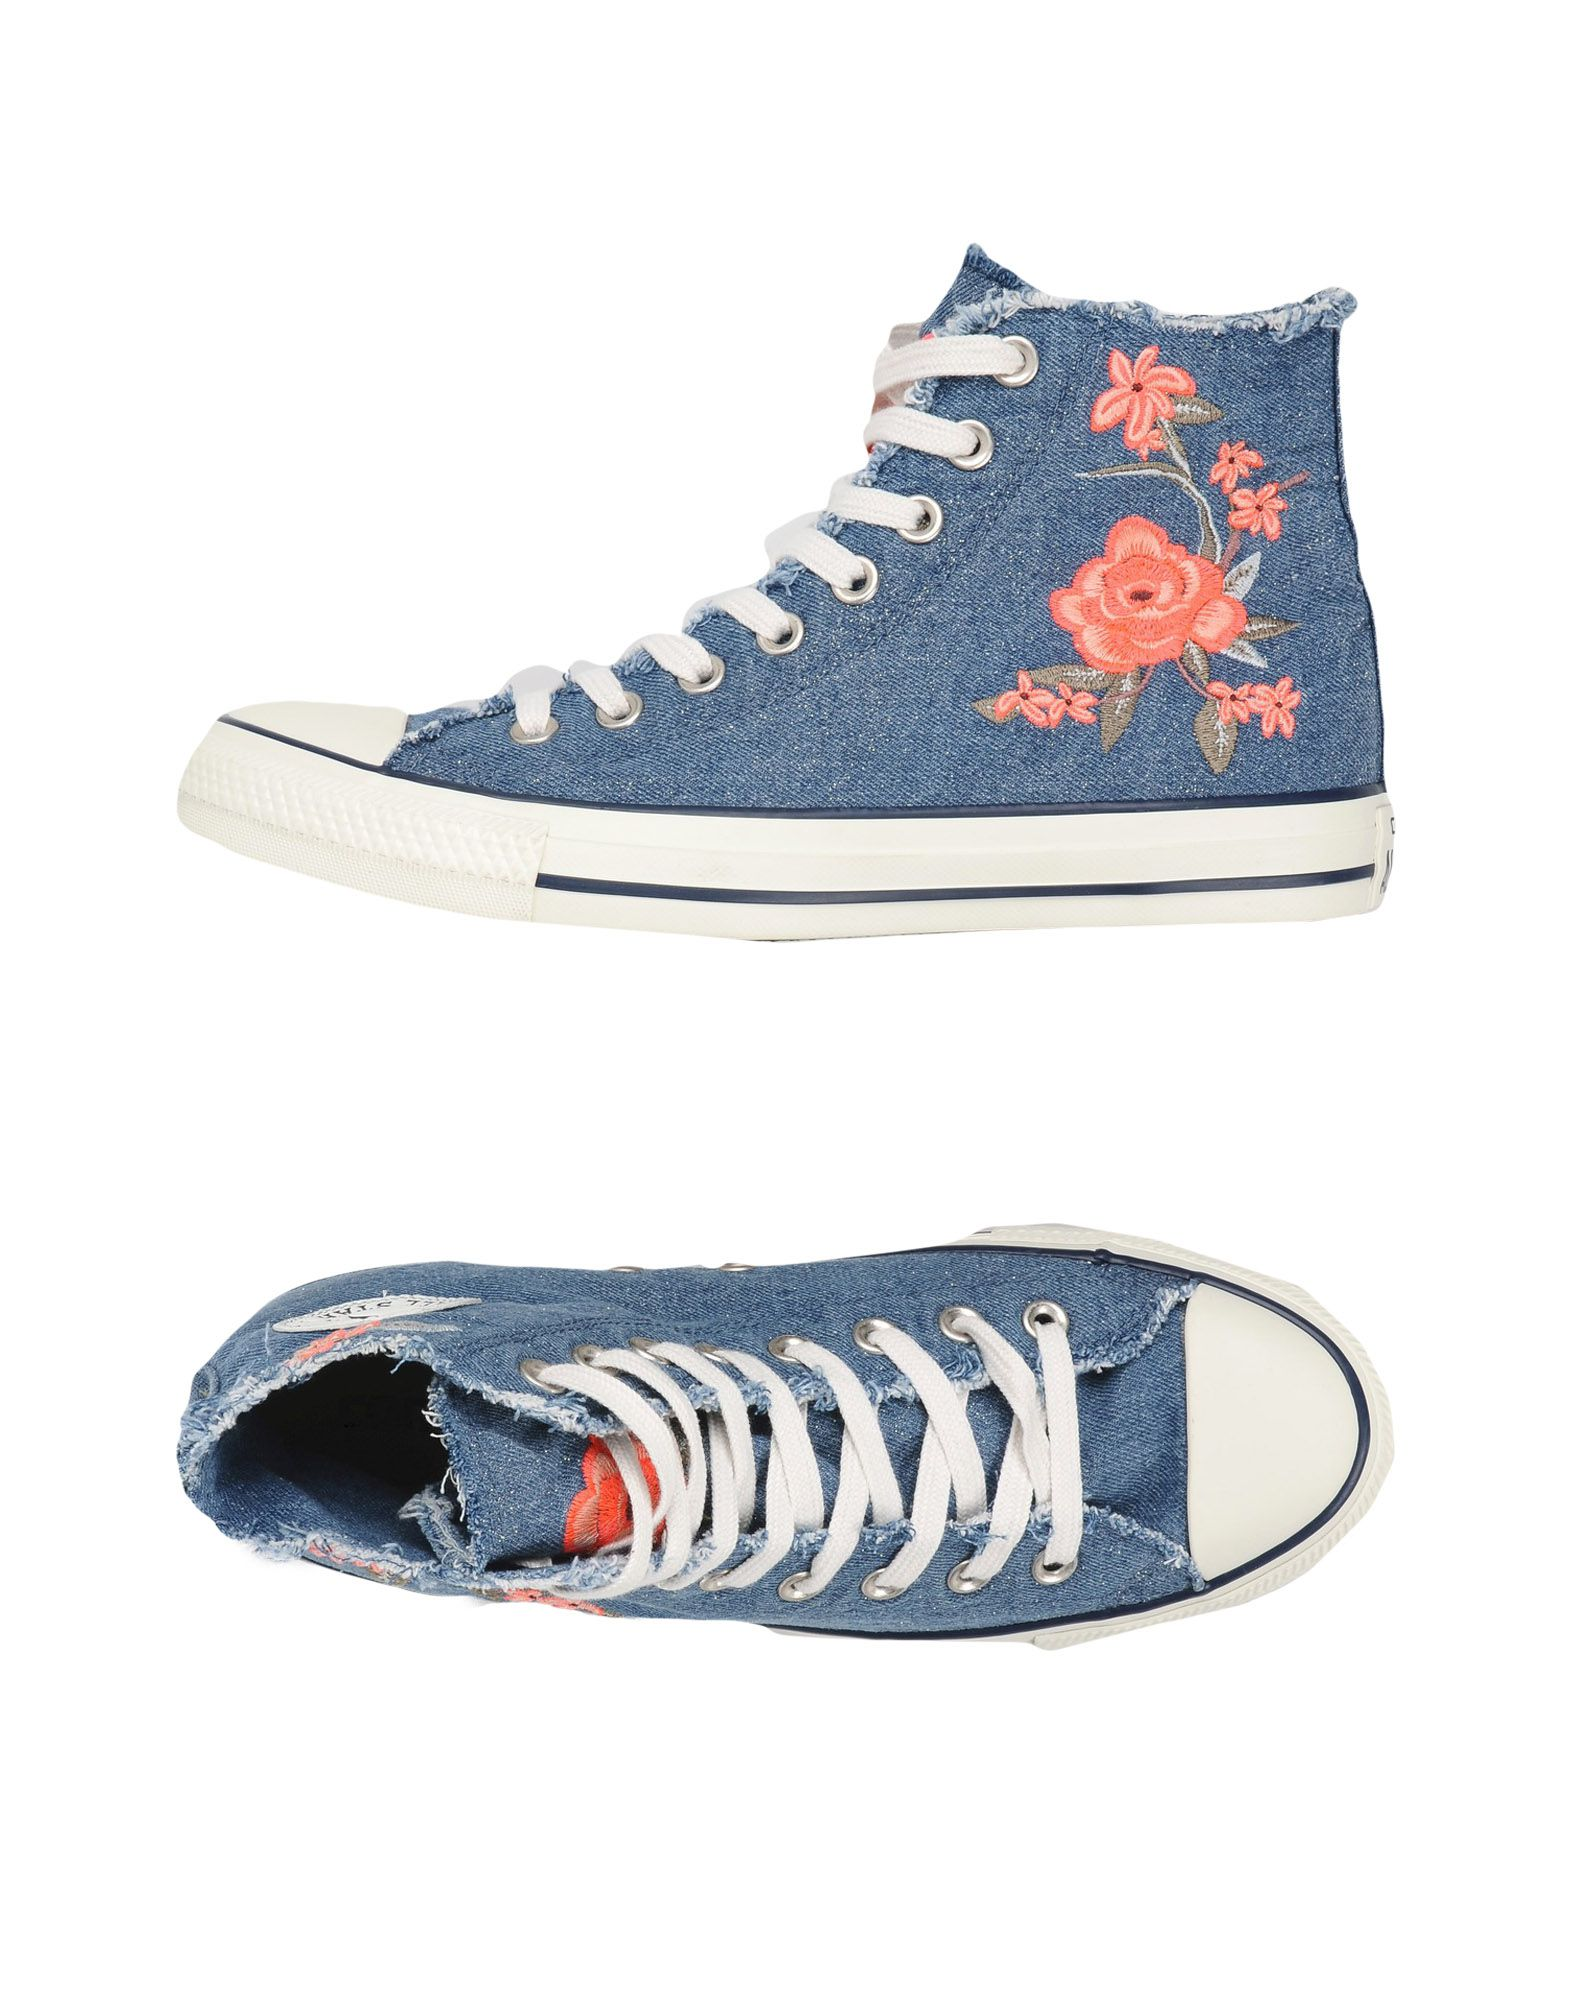 Sneakers Converse All Star Ctas Hi Denim Frayed Flower - Donna - 11445742CO